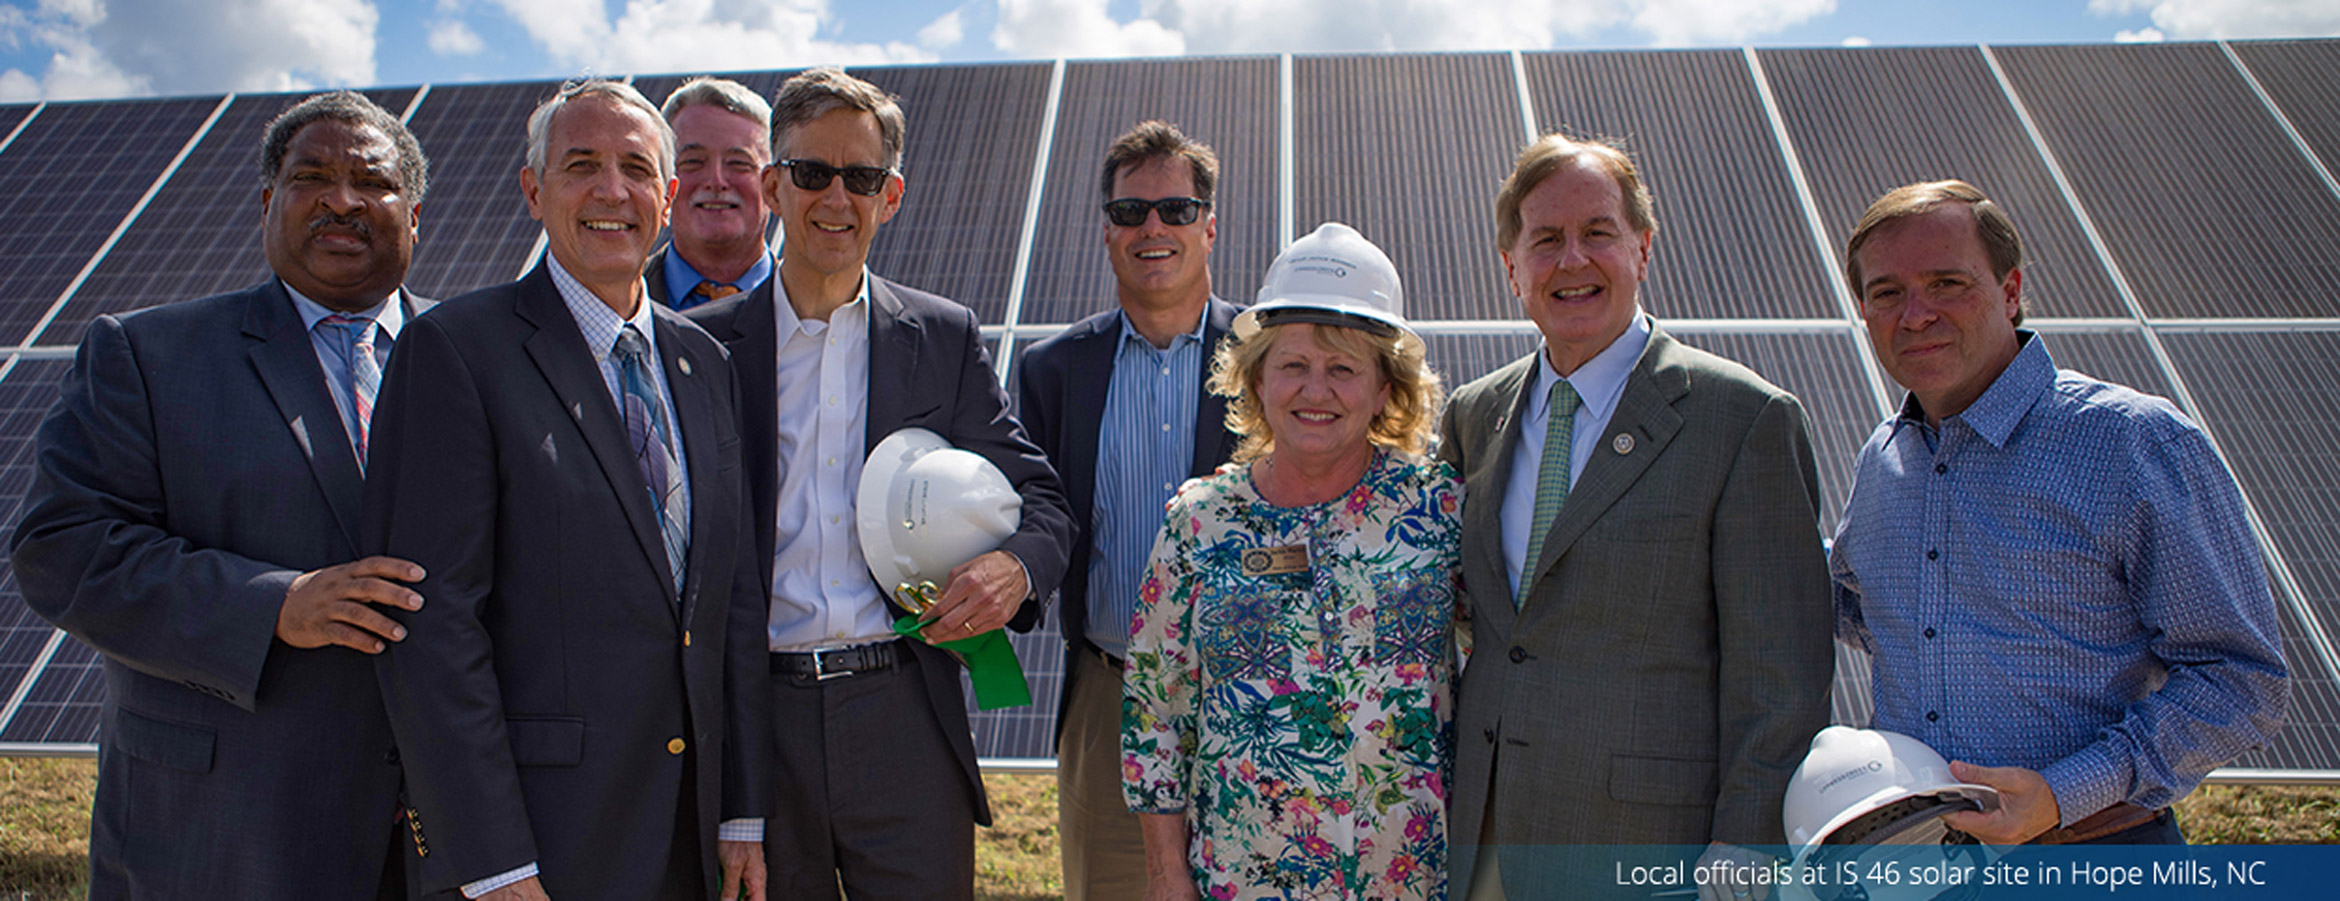 Local officials cut the ribbon on Cypress Creek's IS 46 solar site in Hope Mills, NC